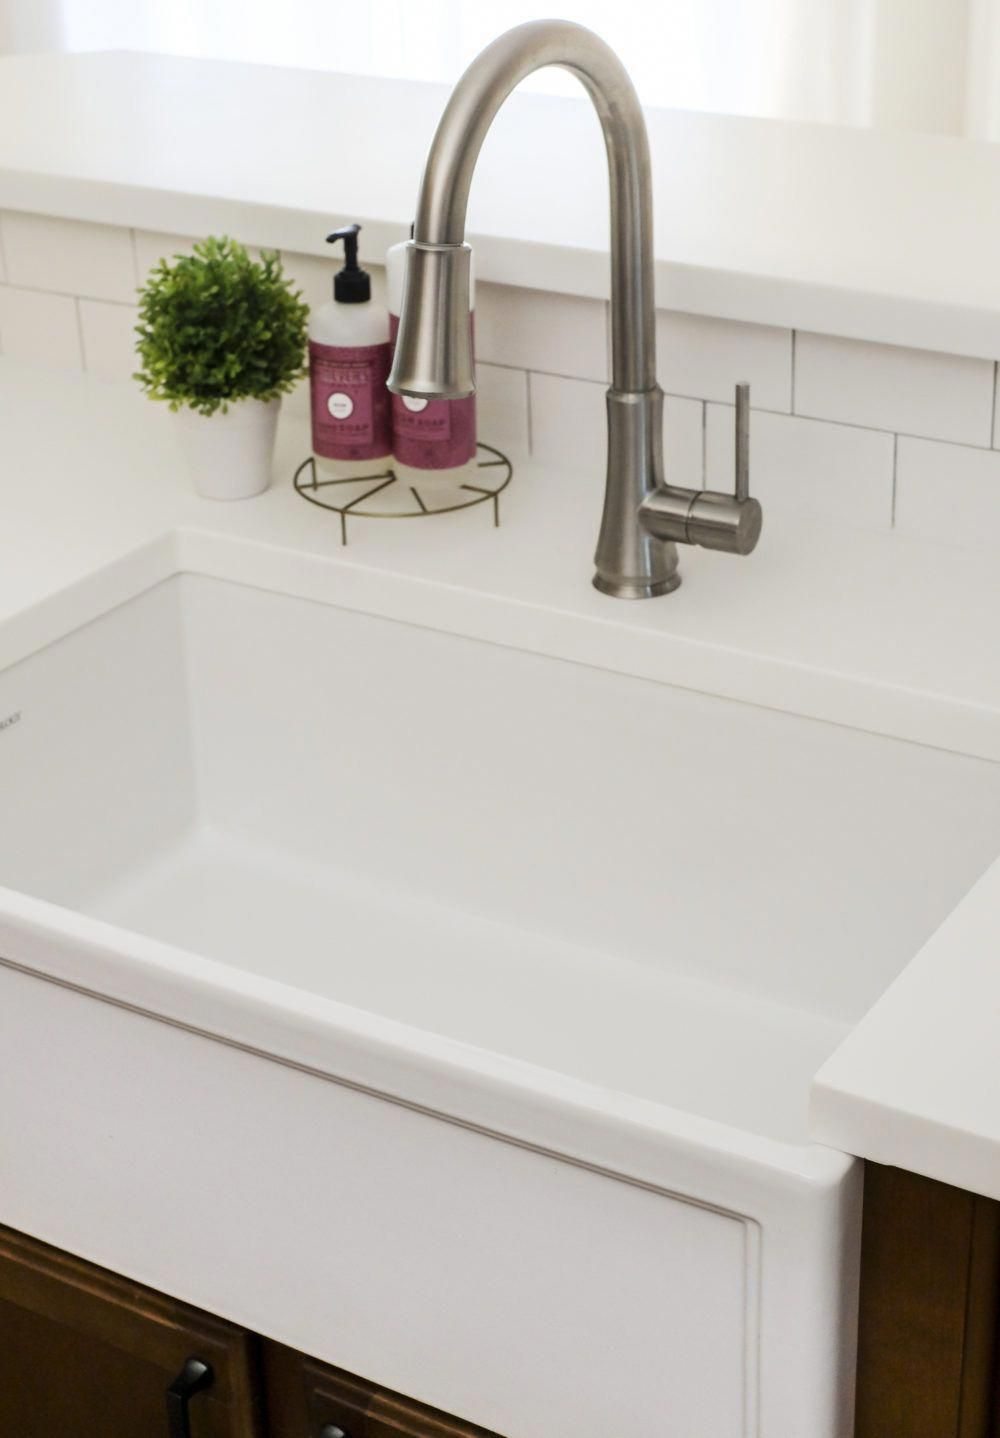 What To Know Before You Buy A Farmhouse Sink Including Cleaning